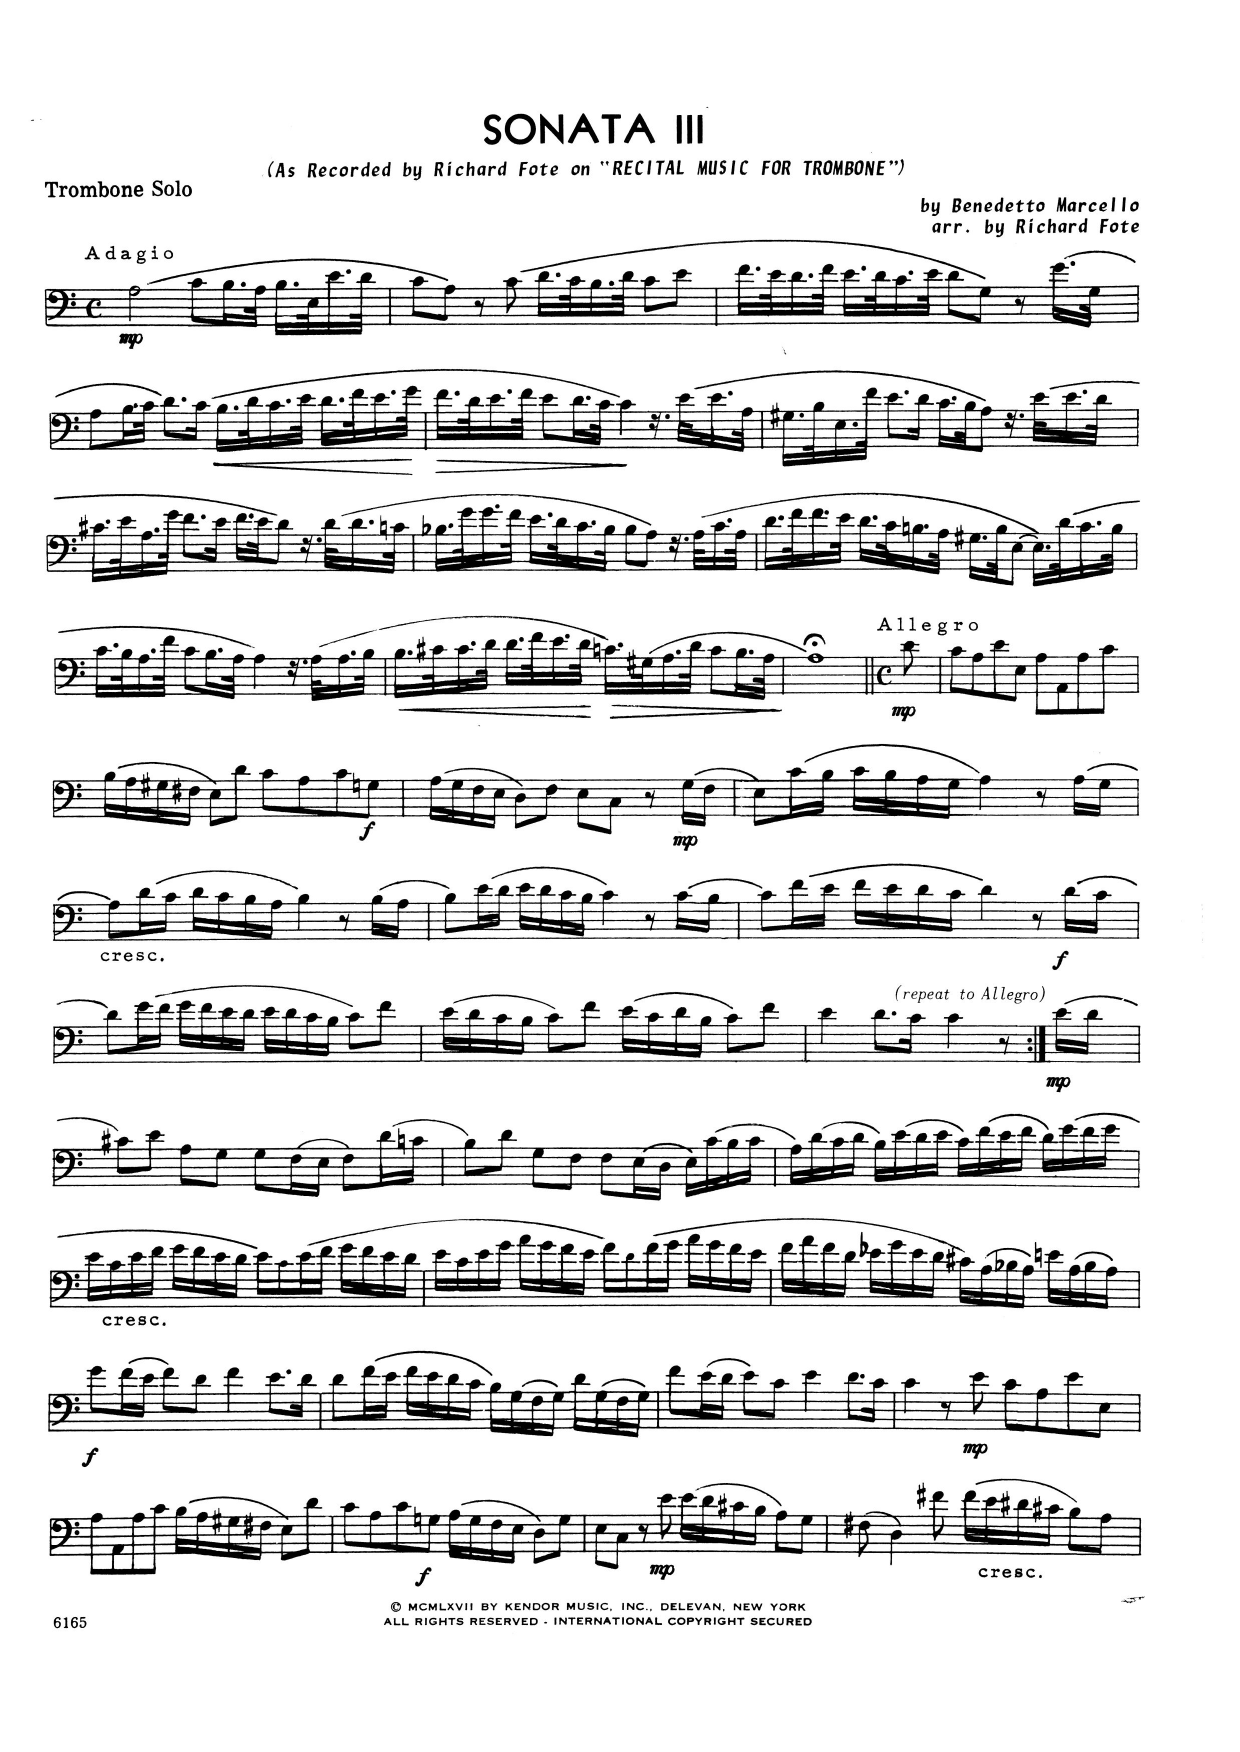 Sonata Iii (complete set of parts) sheet music for trombone and piano by Benedetto Marcello and Richard Fote. Score Image Preview.